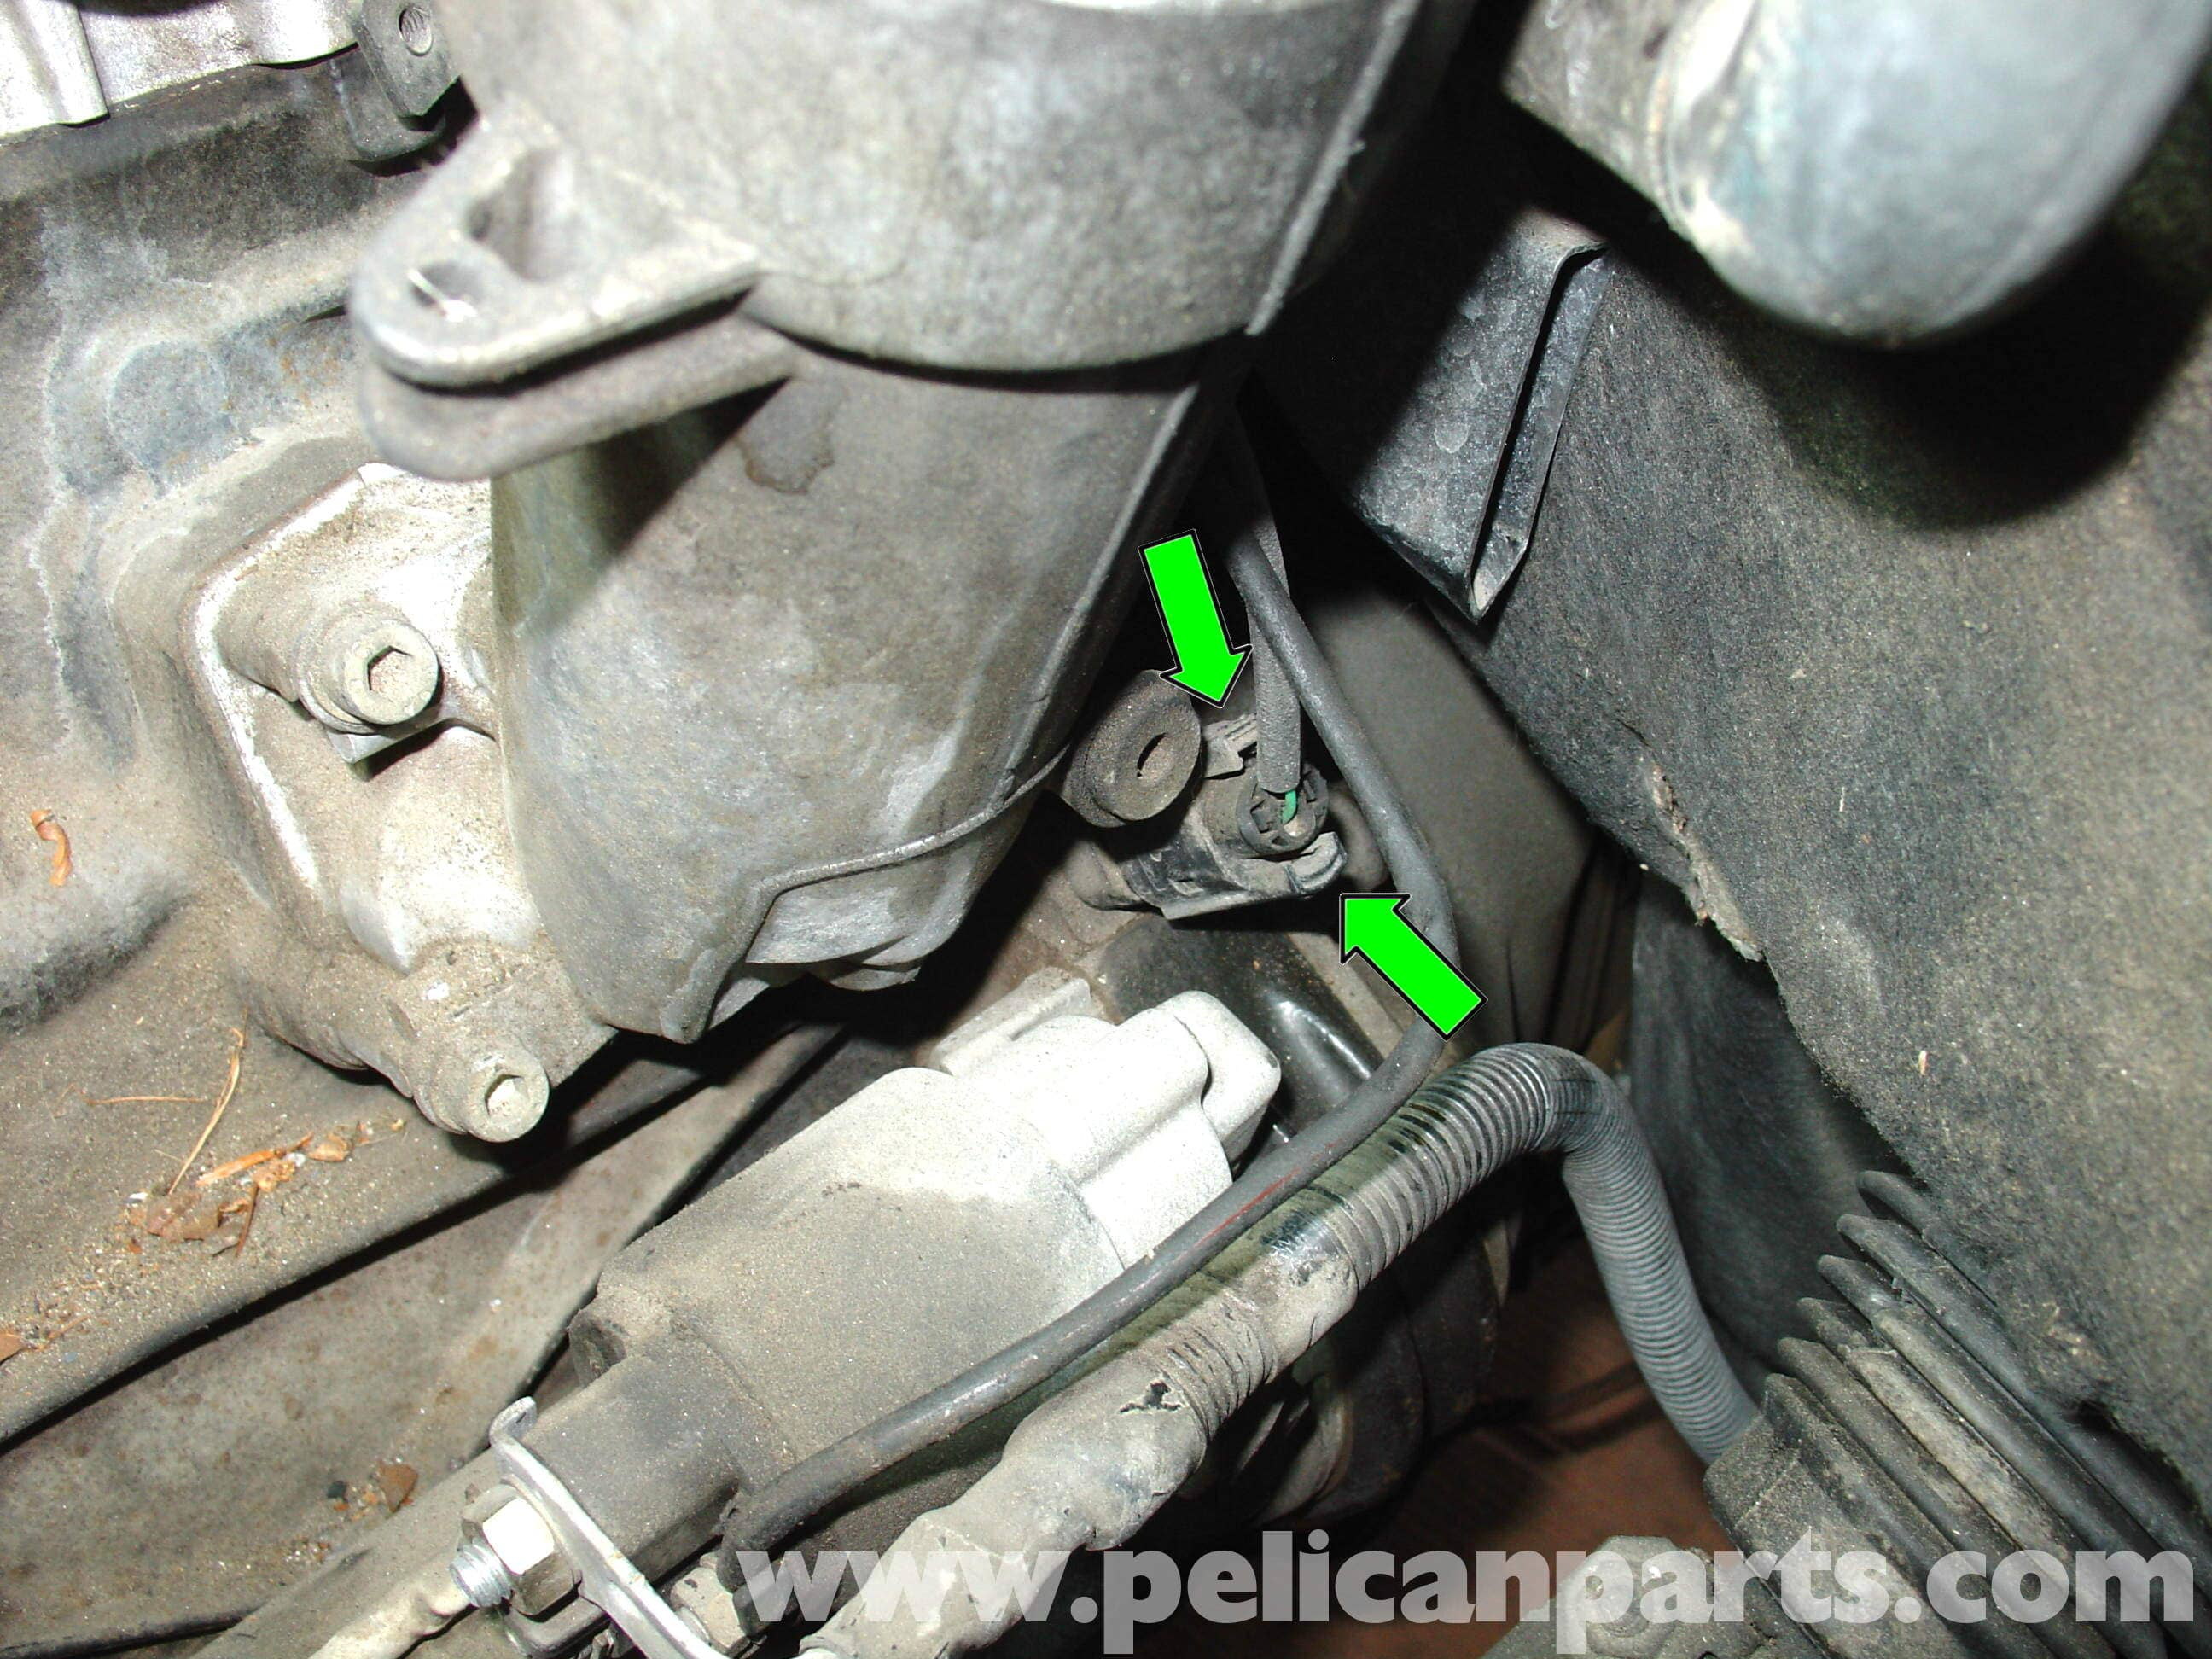 Mercedes benz w210 crankshaft position sensor replacement for Mercedes benz ml500 crankshaft position sensor